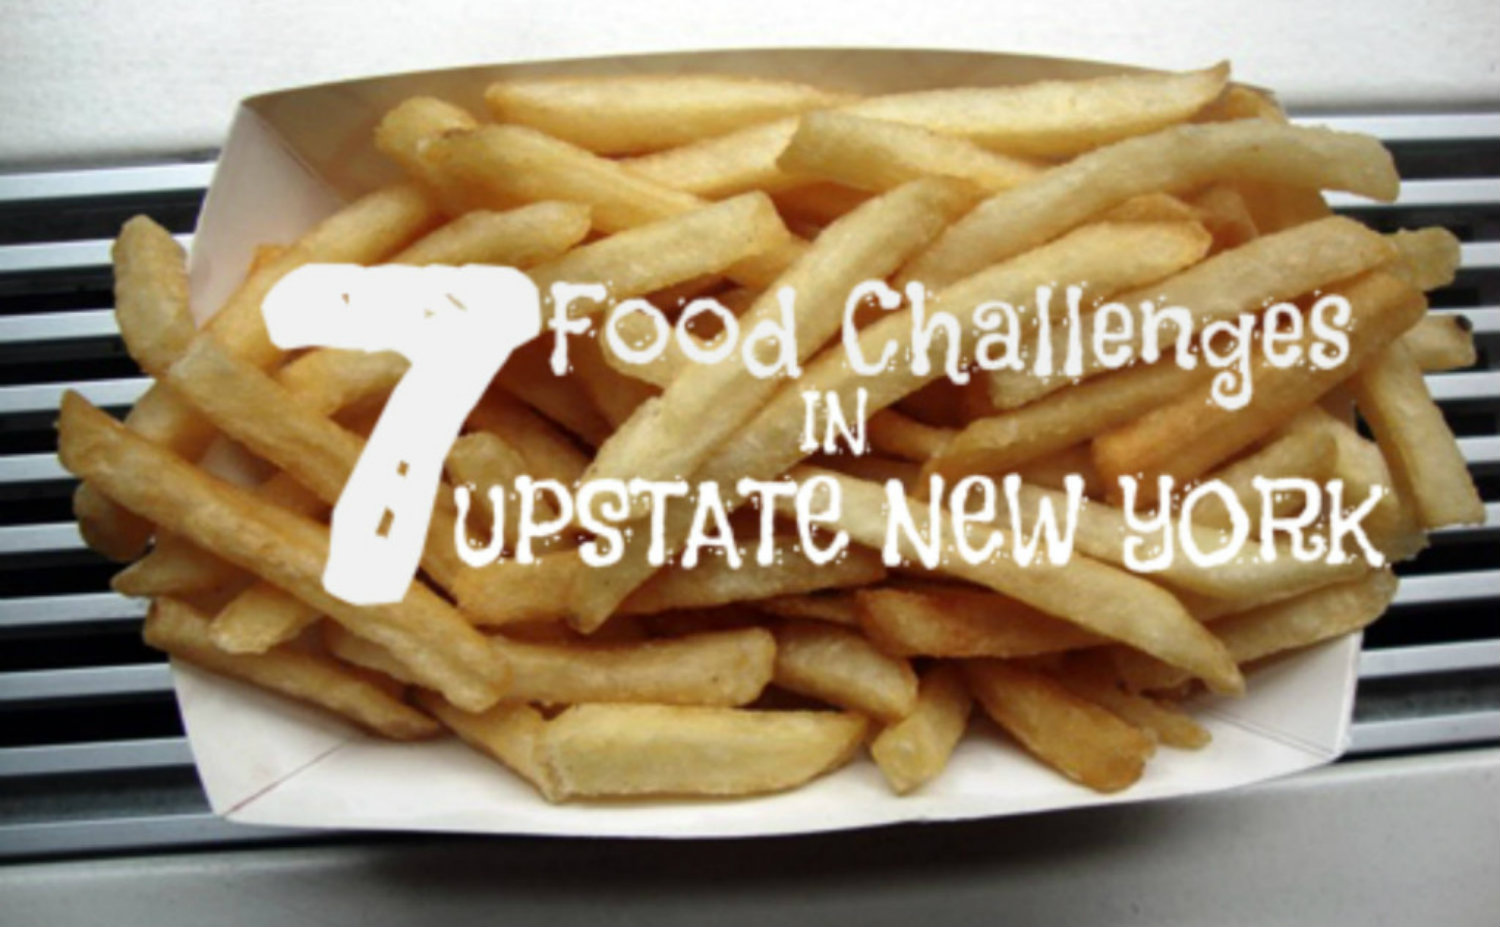 new york s best food challenges chris new york state 0 looking to test